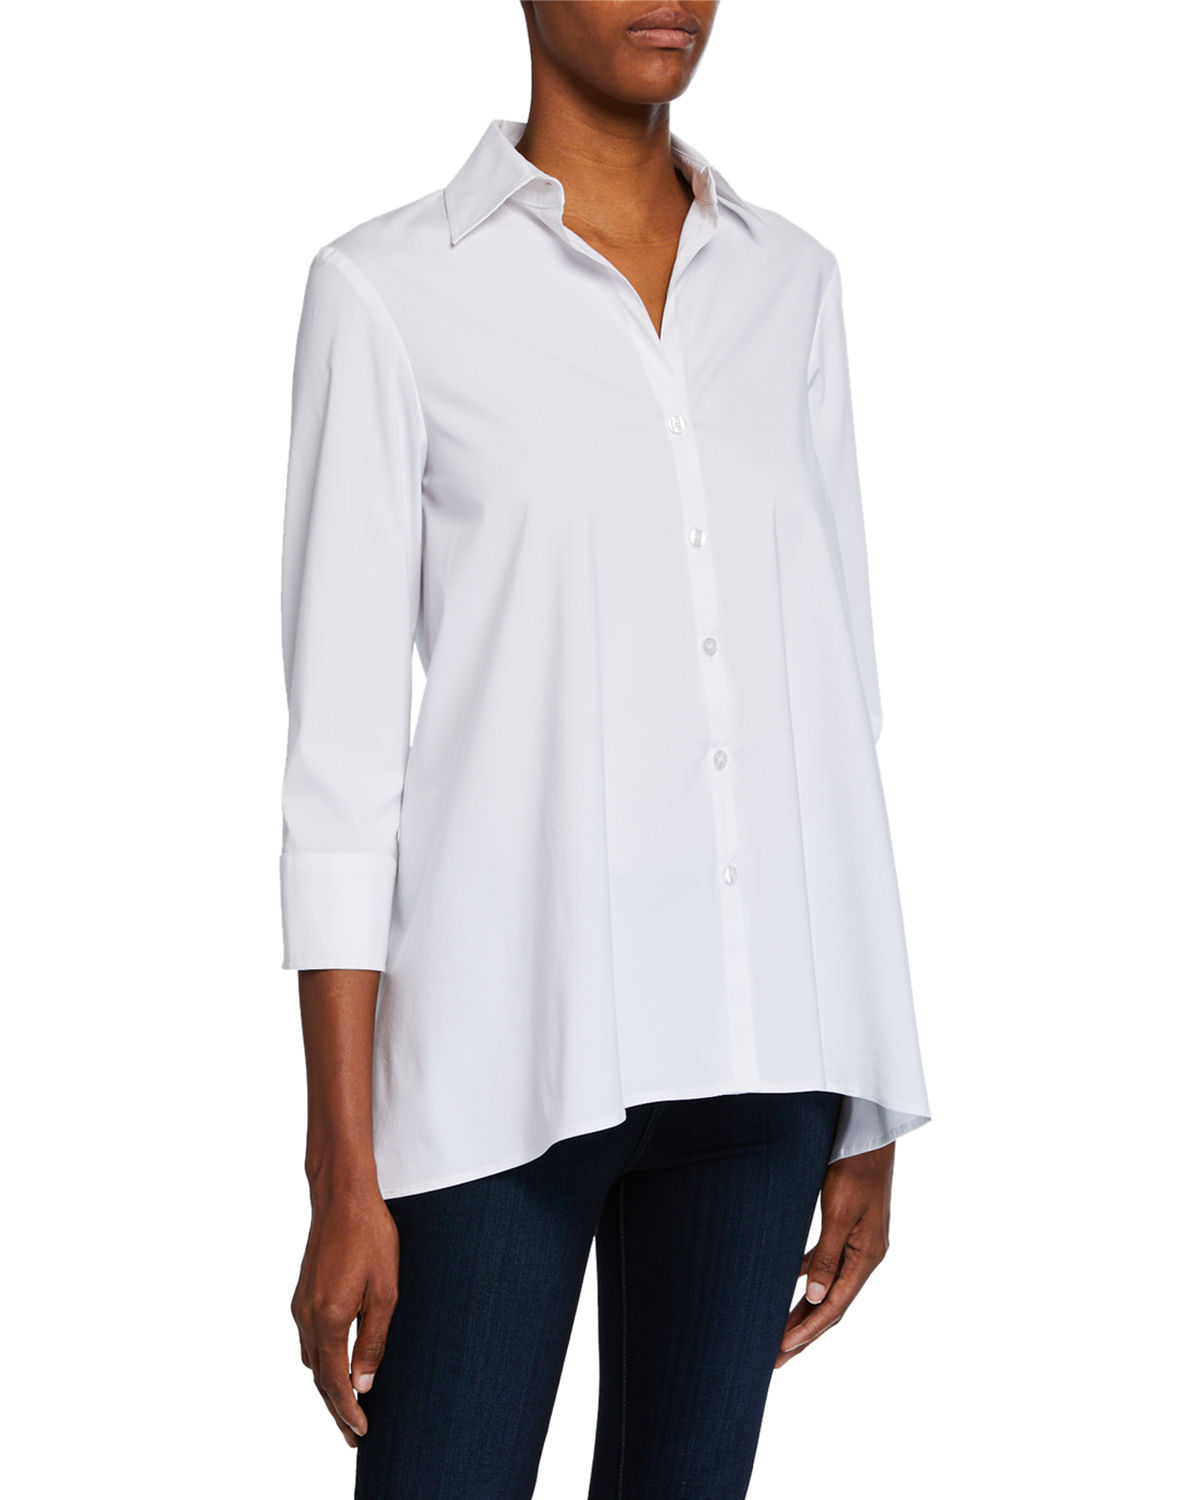 d556a8bc8 Finley Plus Size Button-Down 3/4-Sleeve Trapeze Shirt In White ...